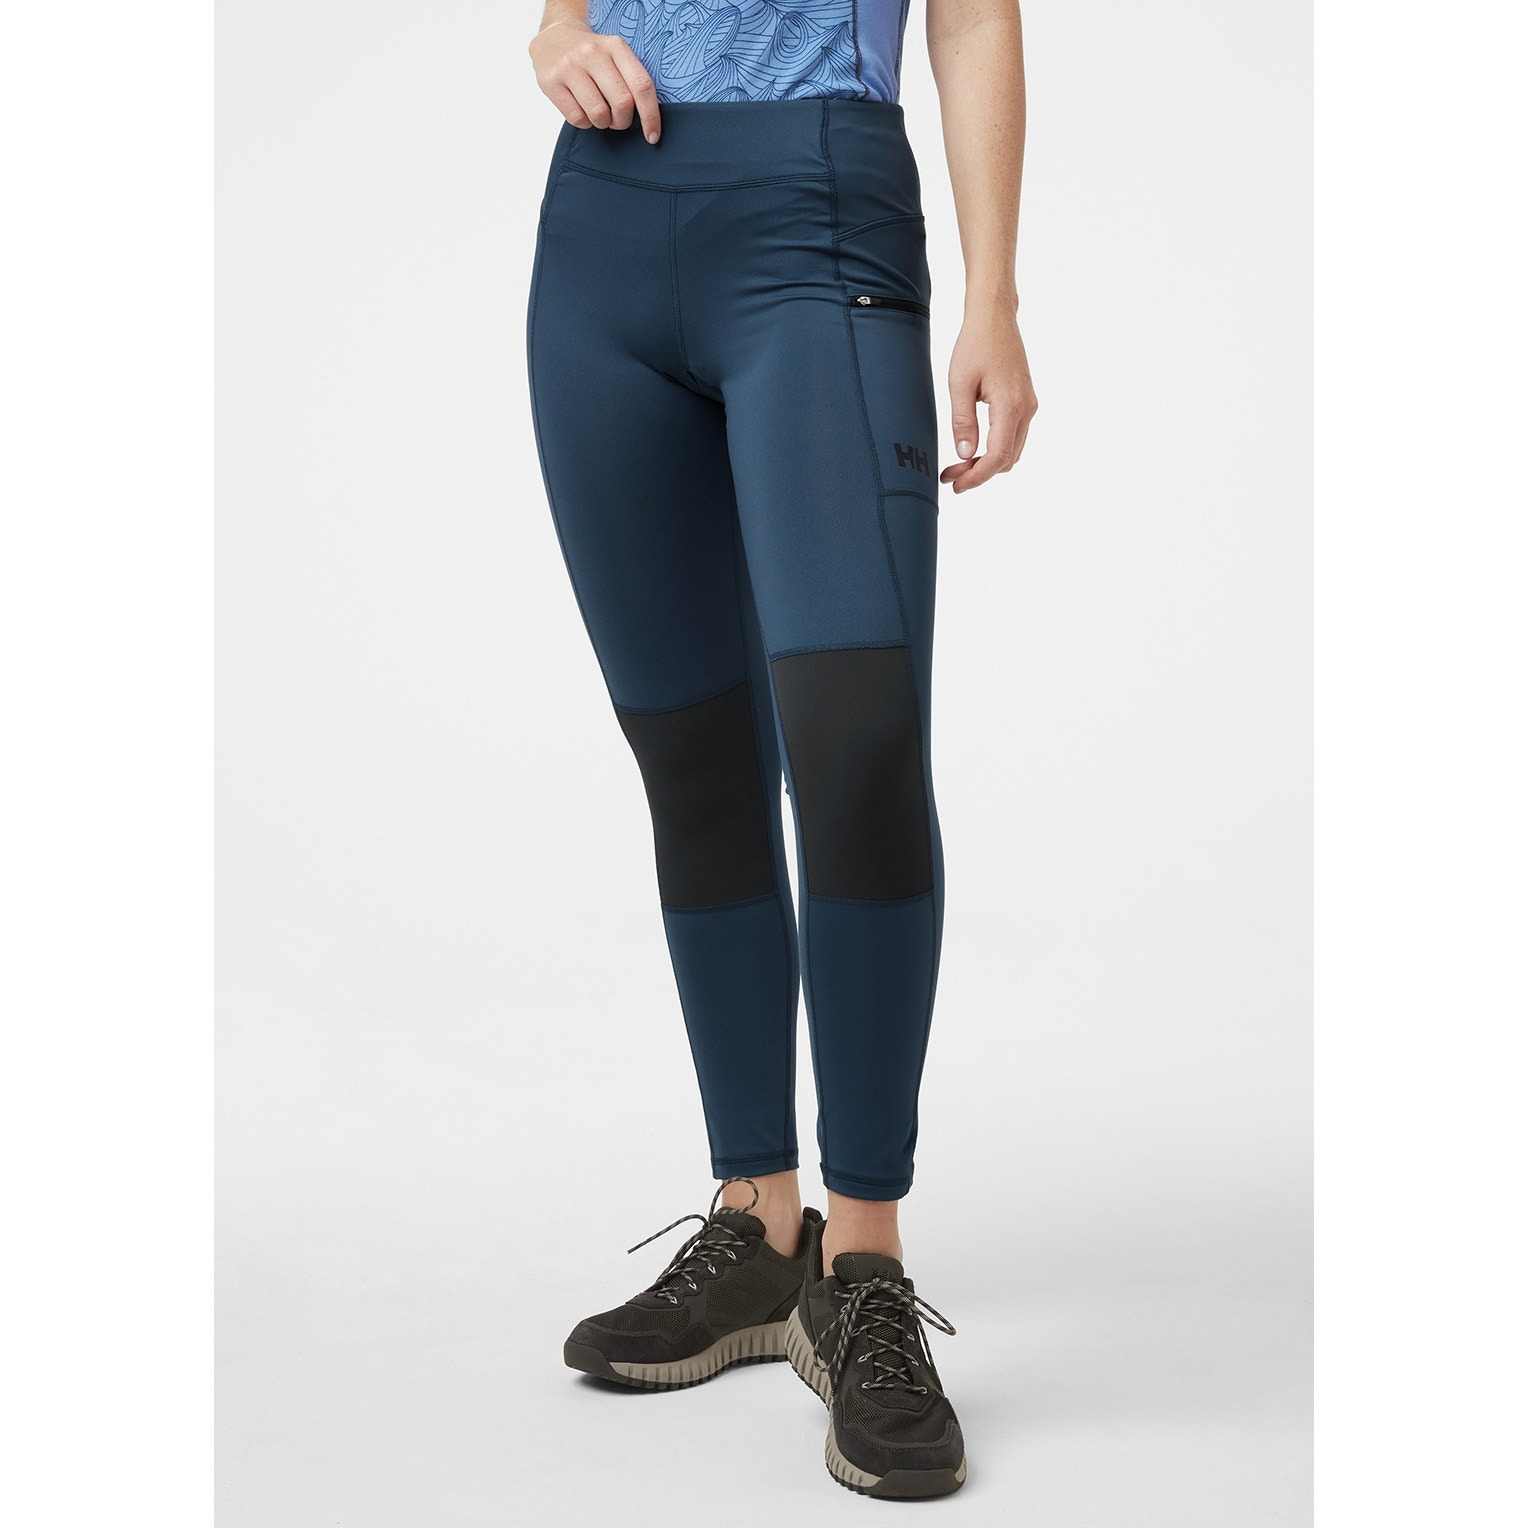 Helly Hansen Rask Tights, dame